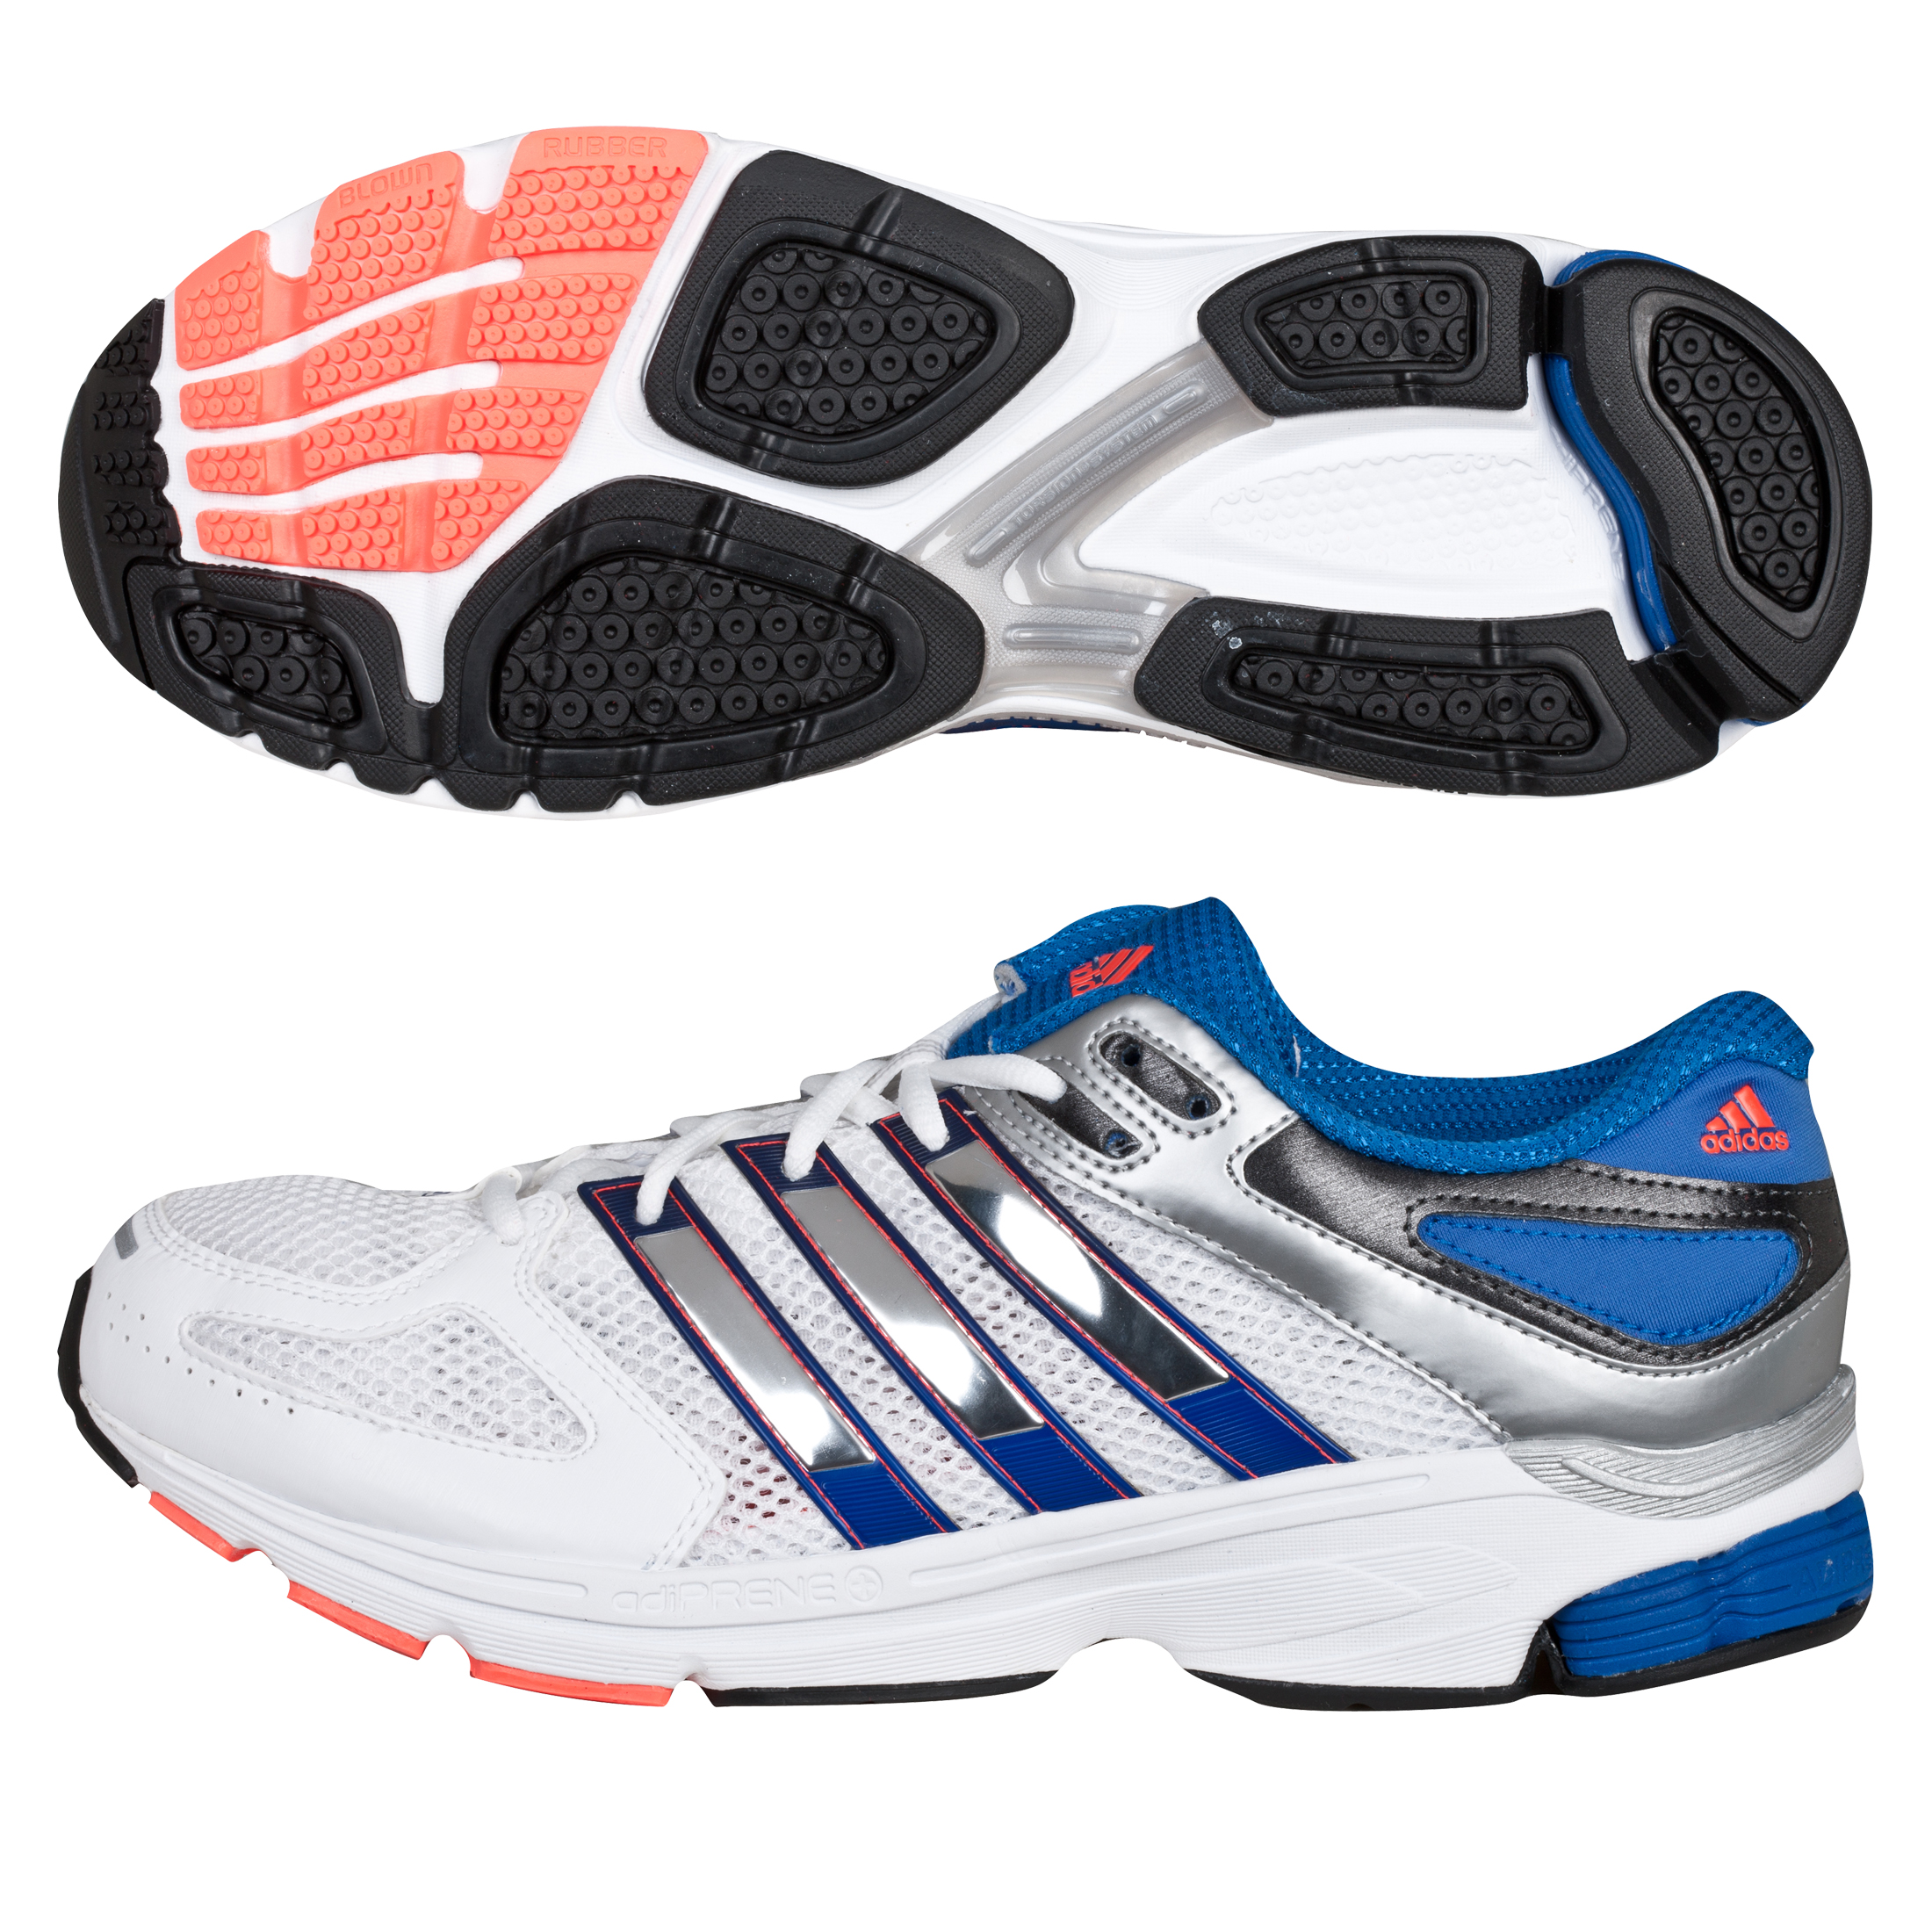 Adidas Questar Stability - White/Met Silver/Infrared White